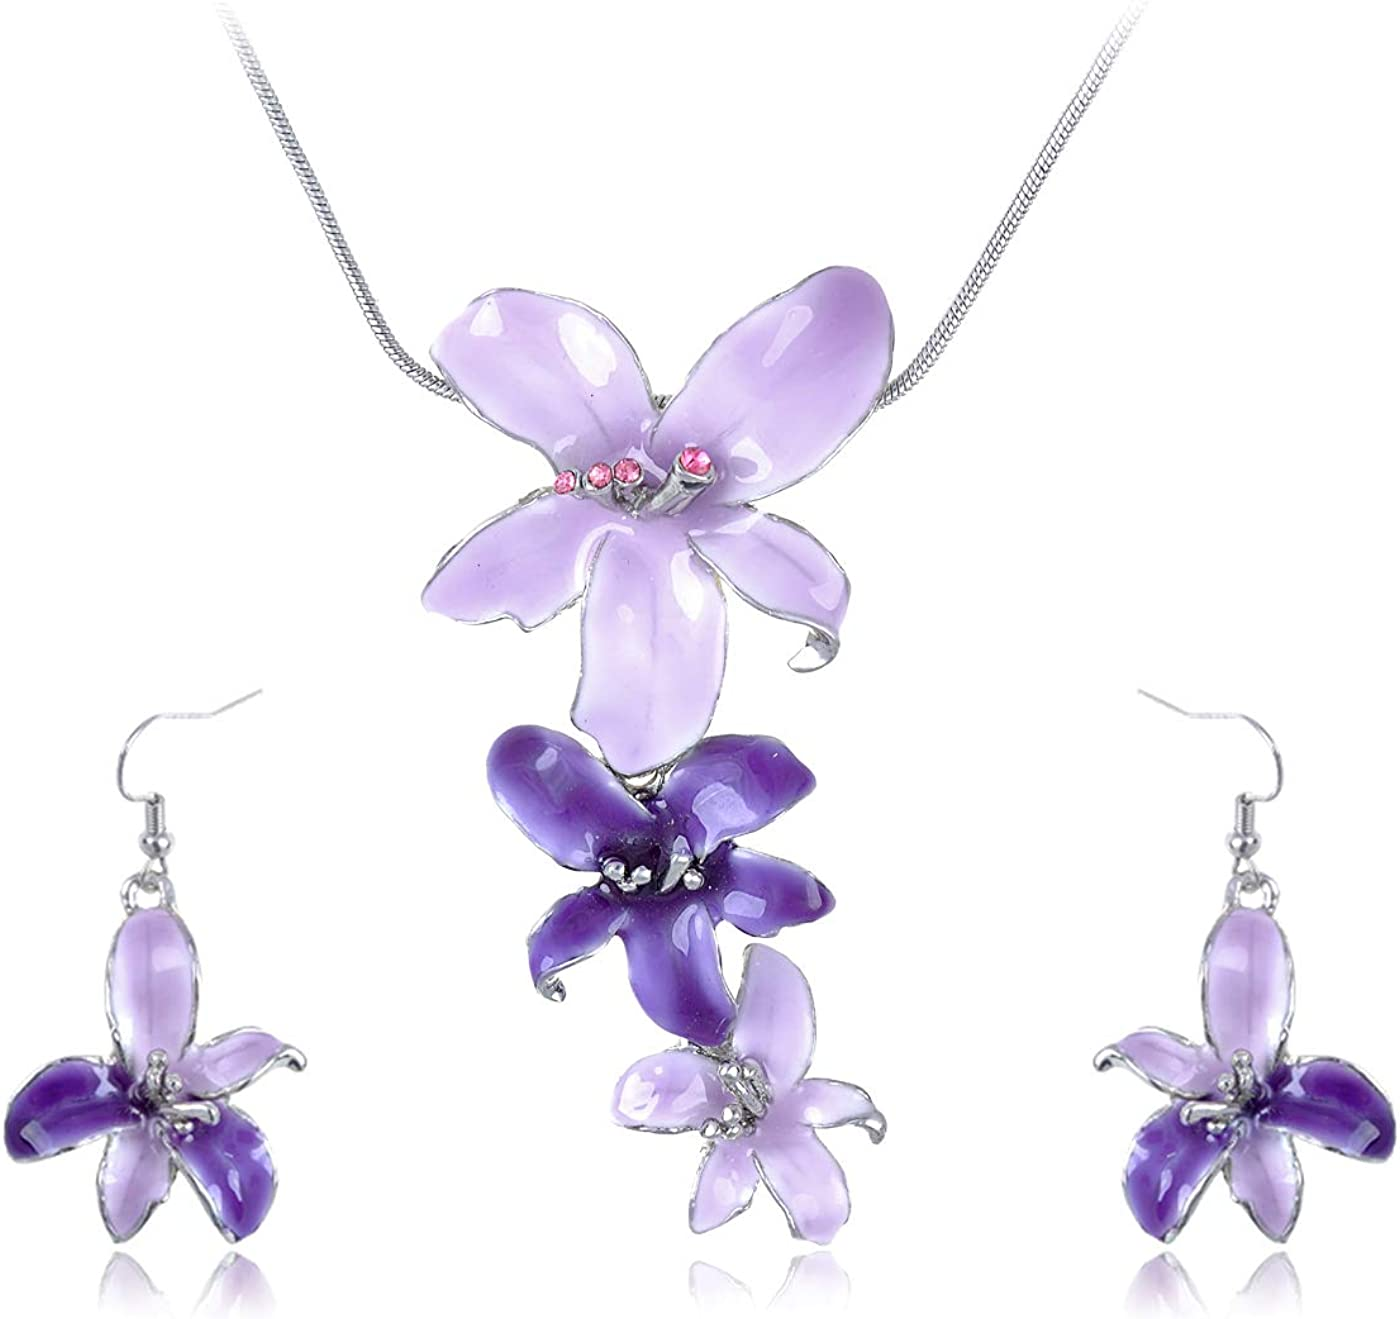 Silvery and lilac flower earrings